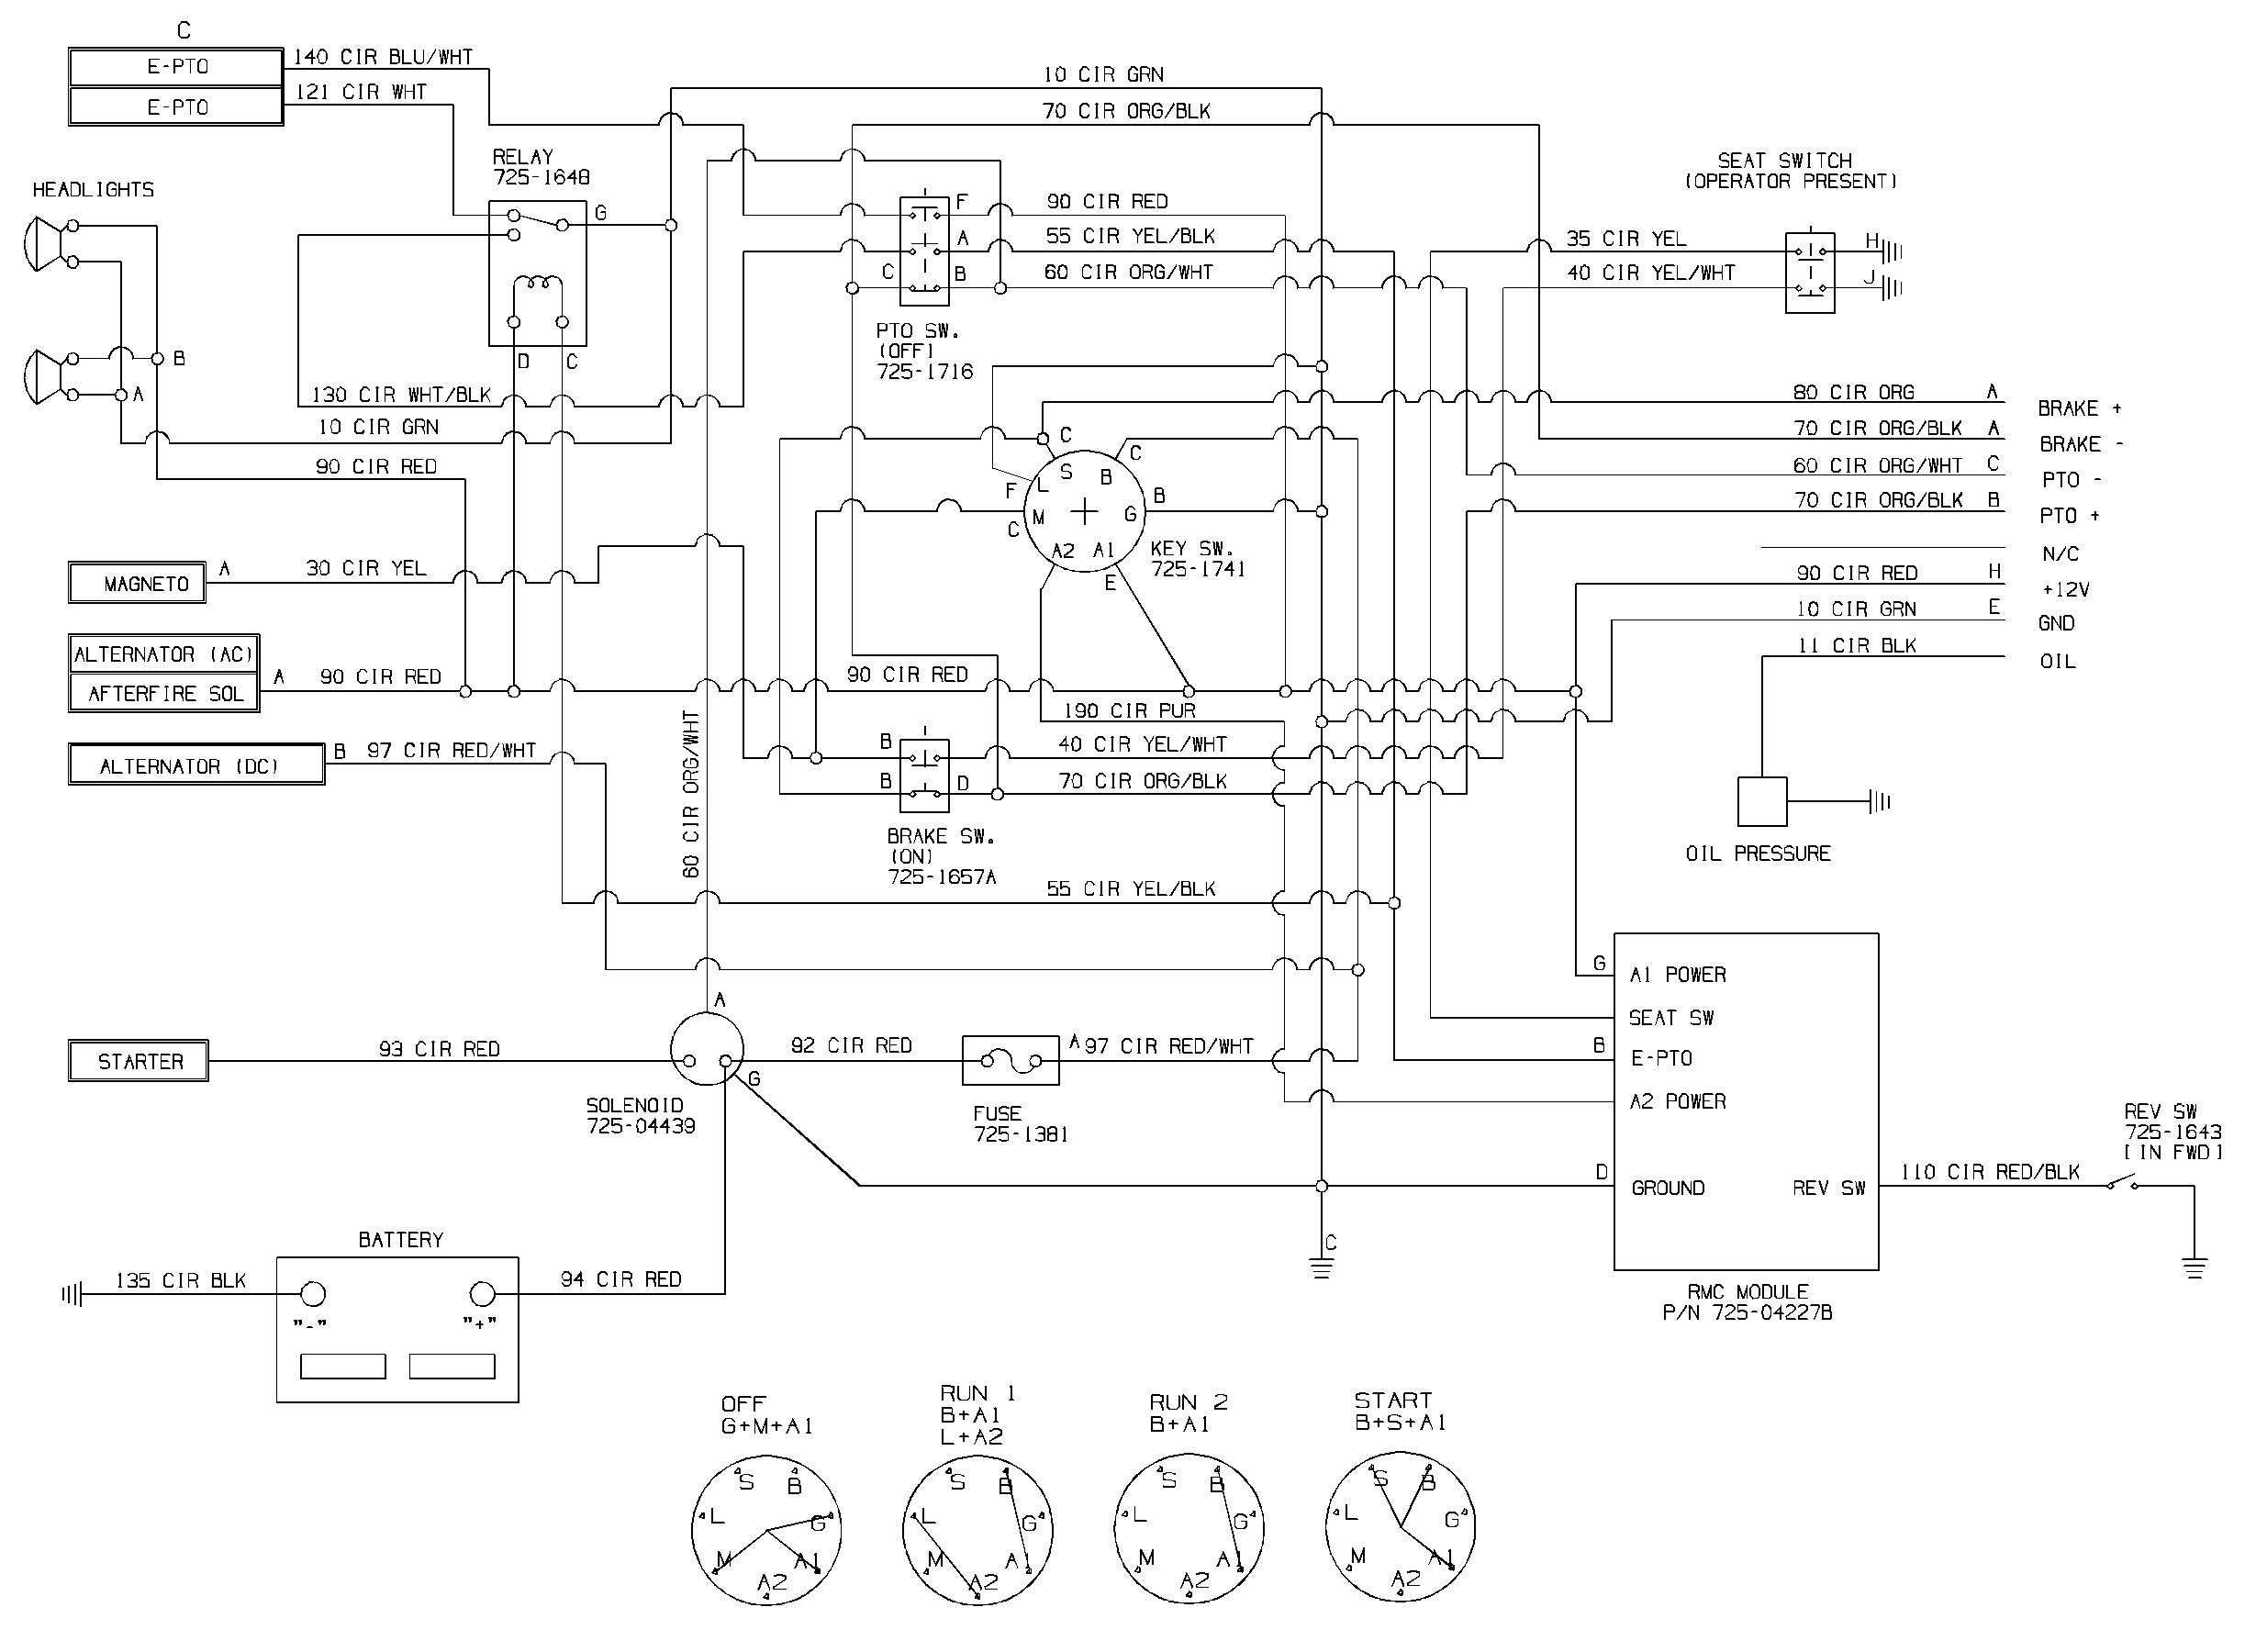 SLTX1050_Schematic cub cadet wiring diagram cub cadet lt1045 wiring diagram \u2022 wiring cub cadet 1045 wiring diagram at fashall.co